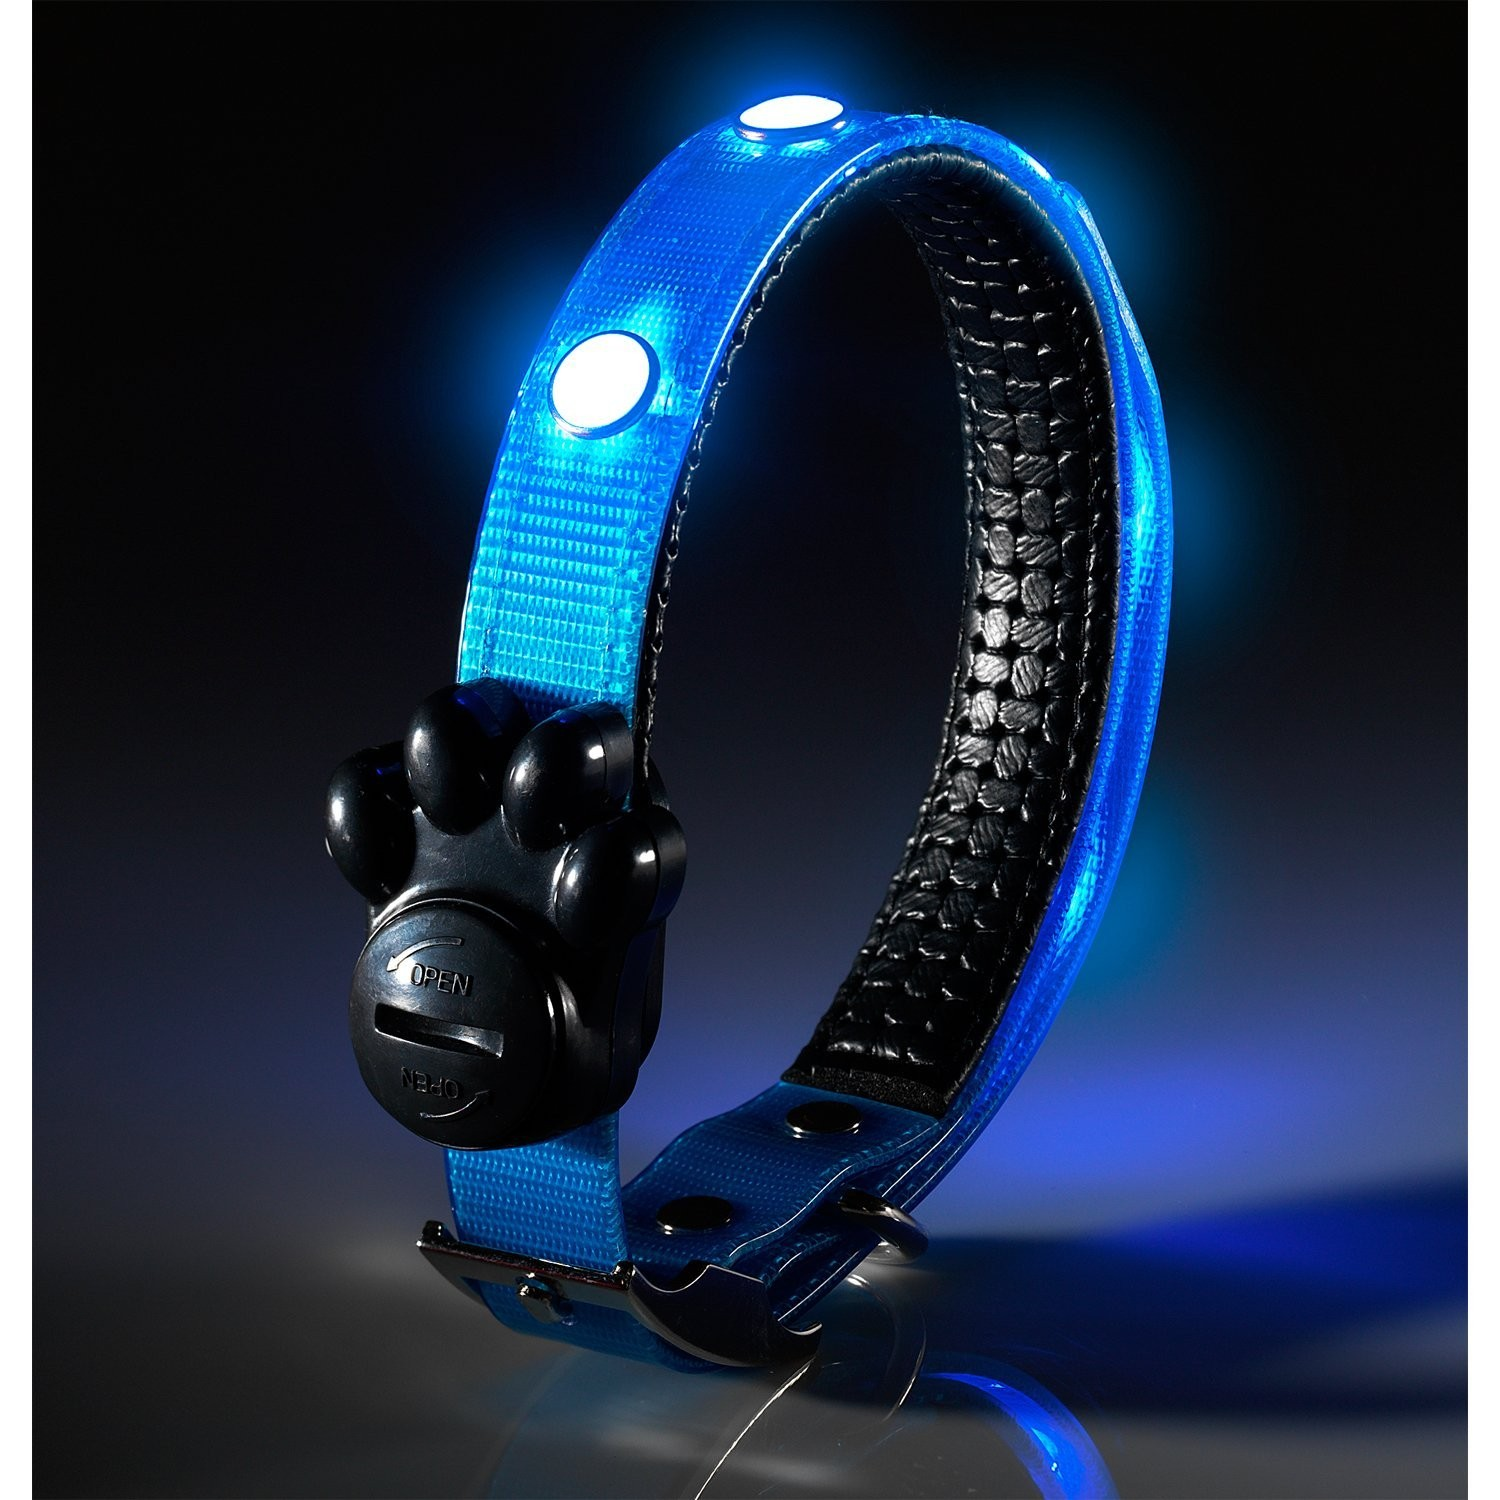 pet light usb cat belt safety itm flashing adjust neck led dog collar adjustable nylon up rechargeable